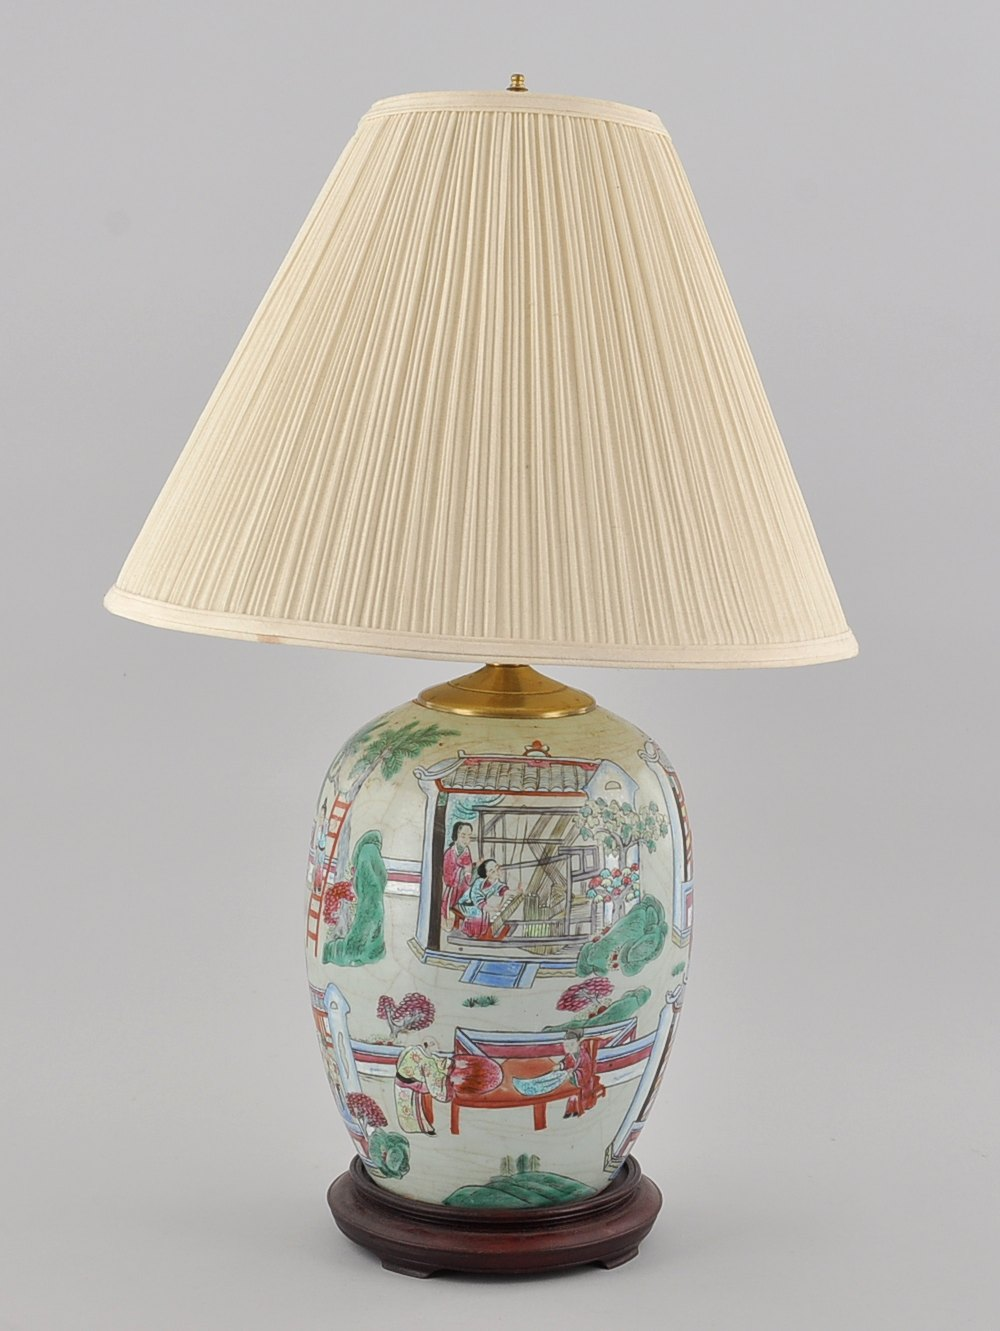 A Chinese Porcelain Famille Rose Lamp, 20th Century